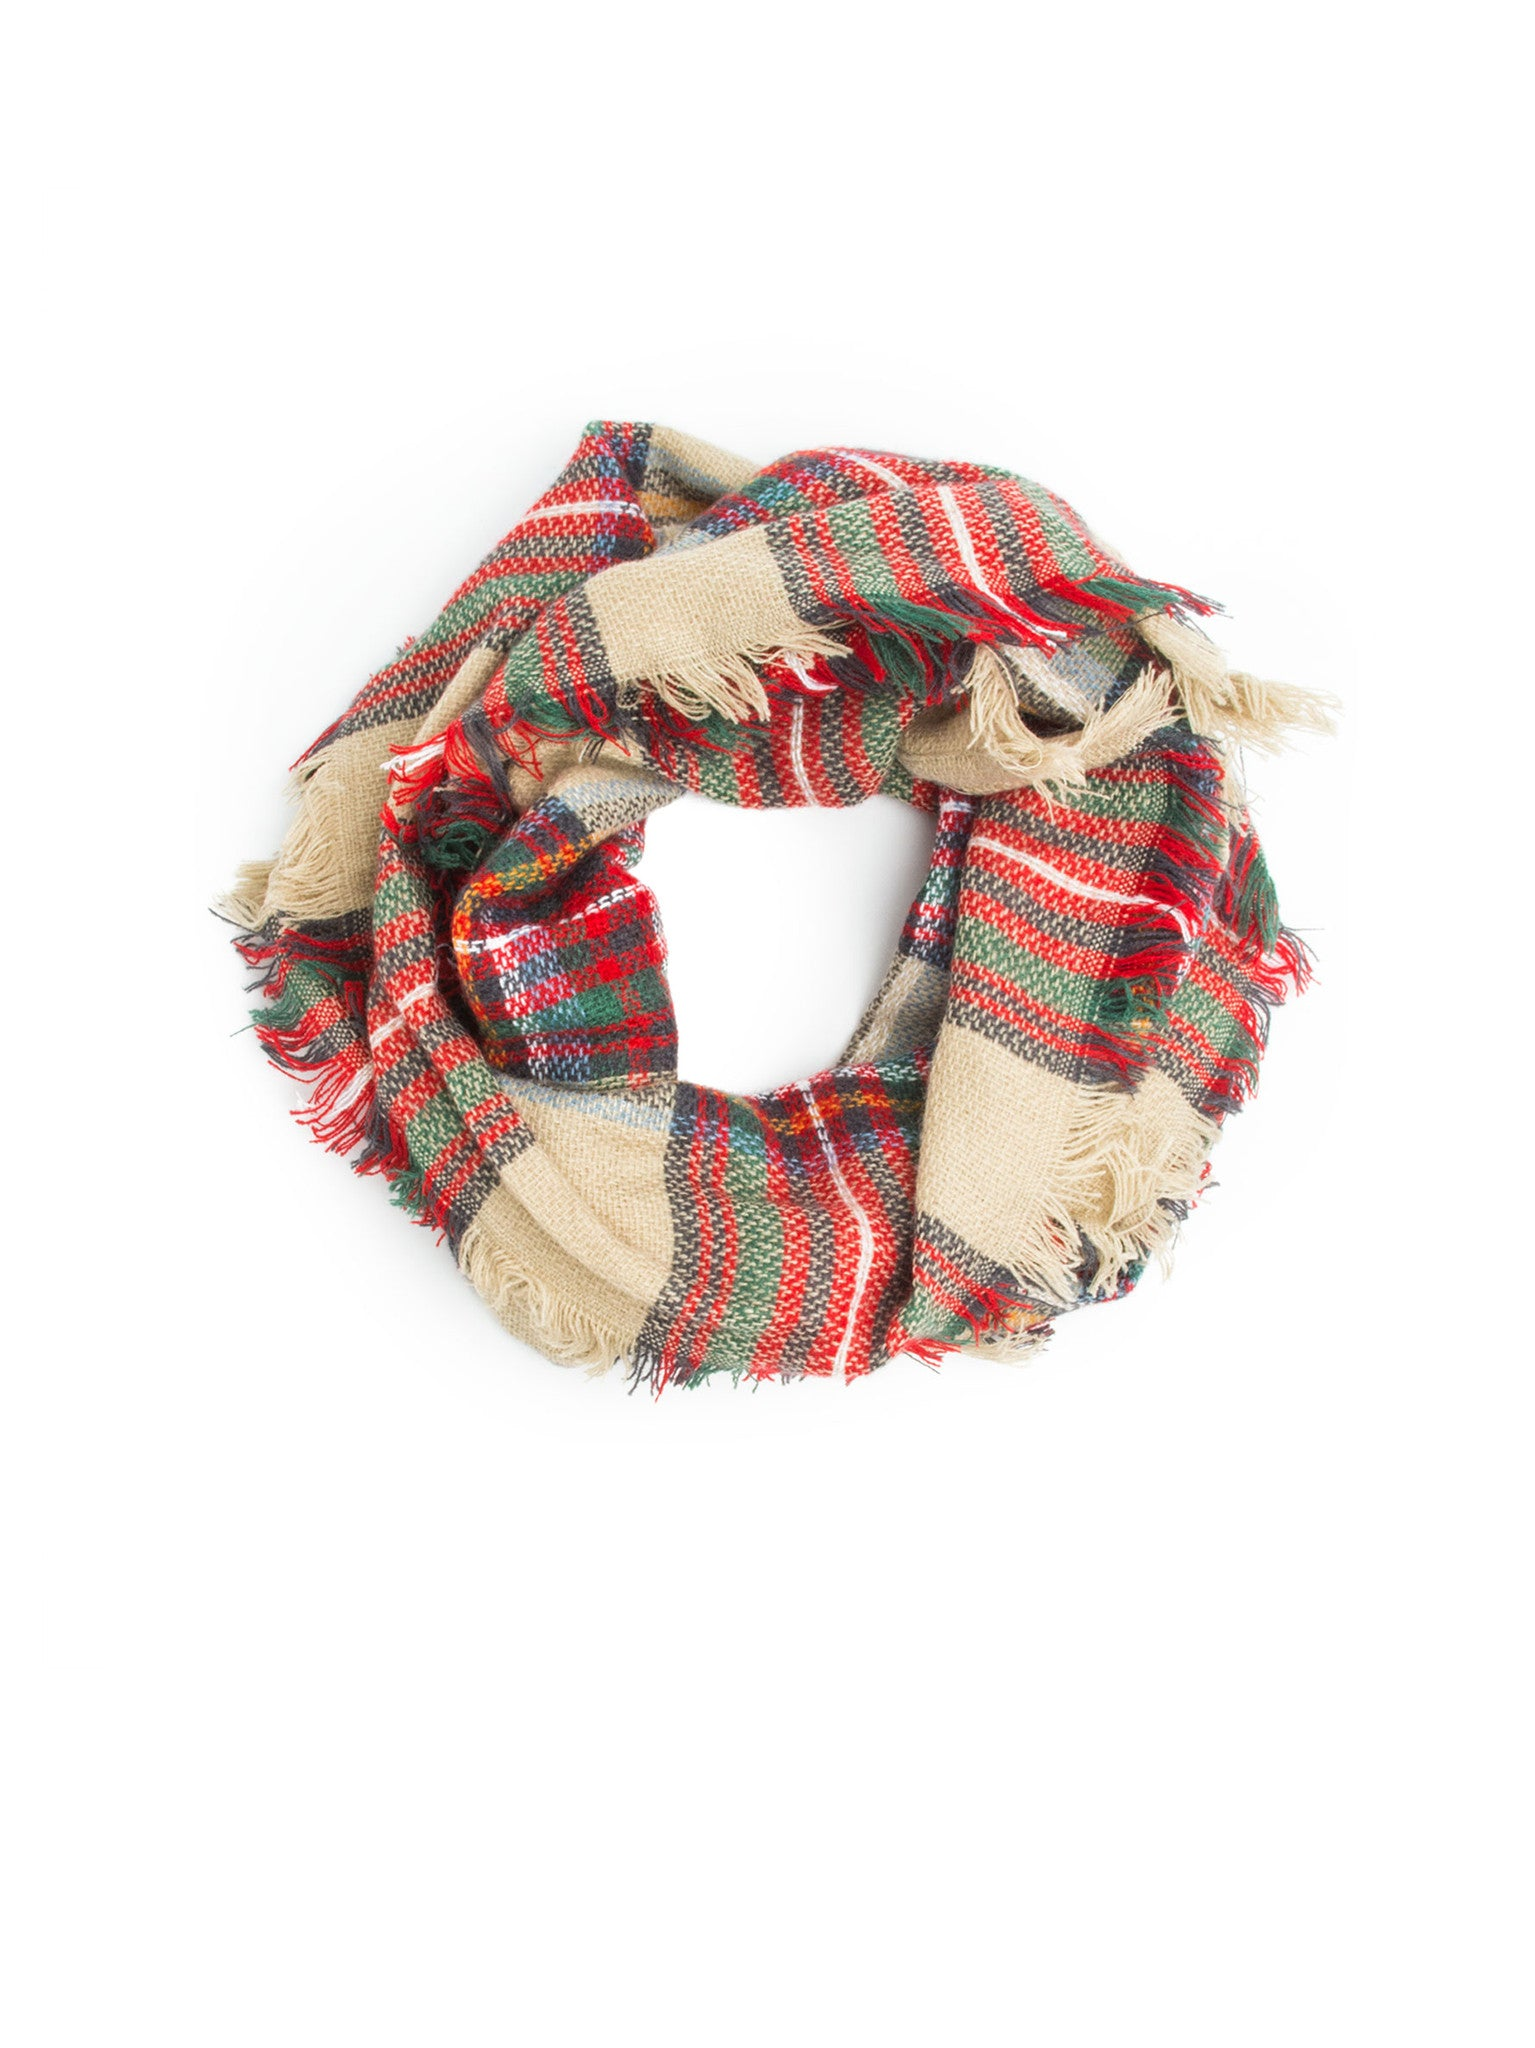 Scarves - Moira Plaid Blanket Infinity Scarf, Plaid Infinity Scarf -(Red) Bohomonde  - 1